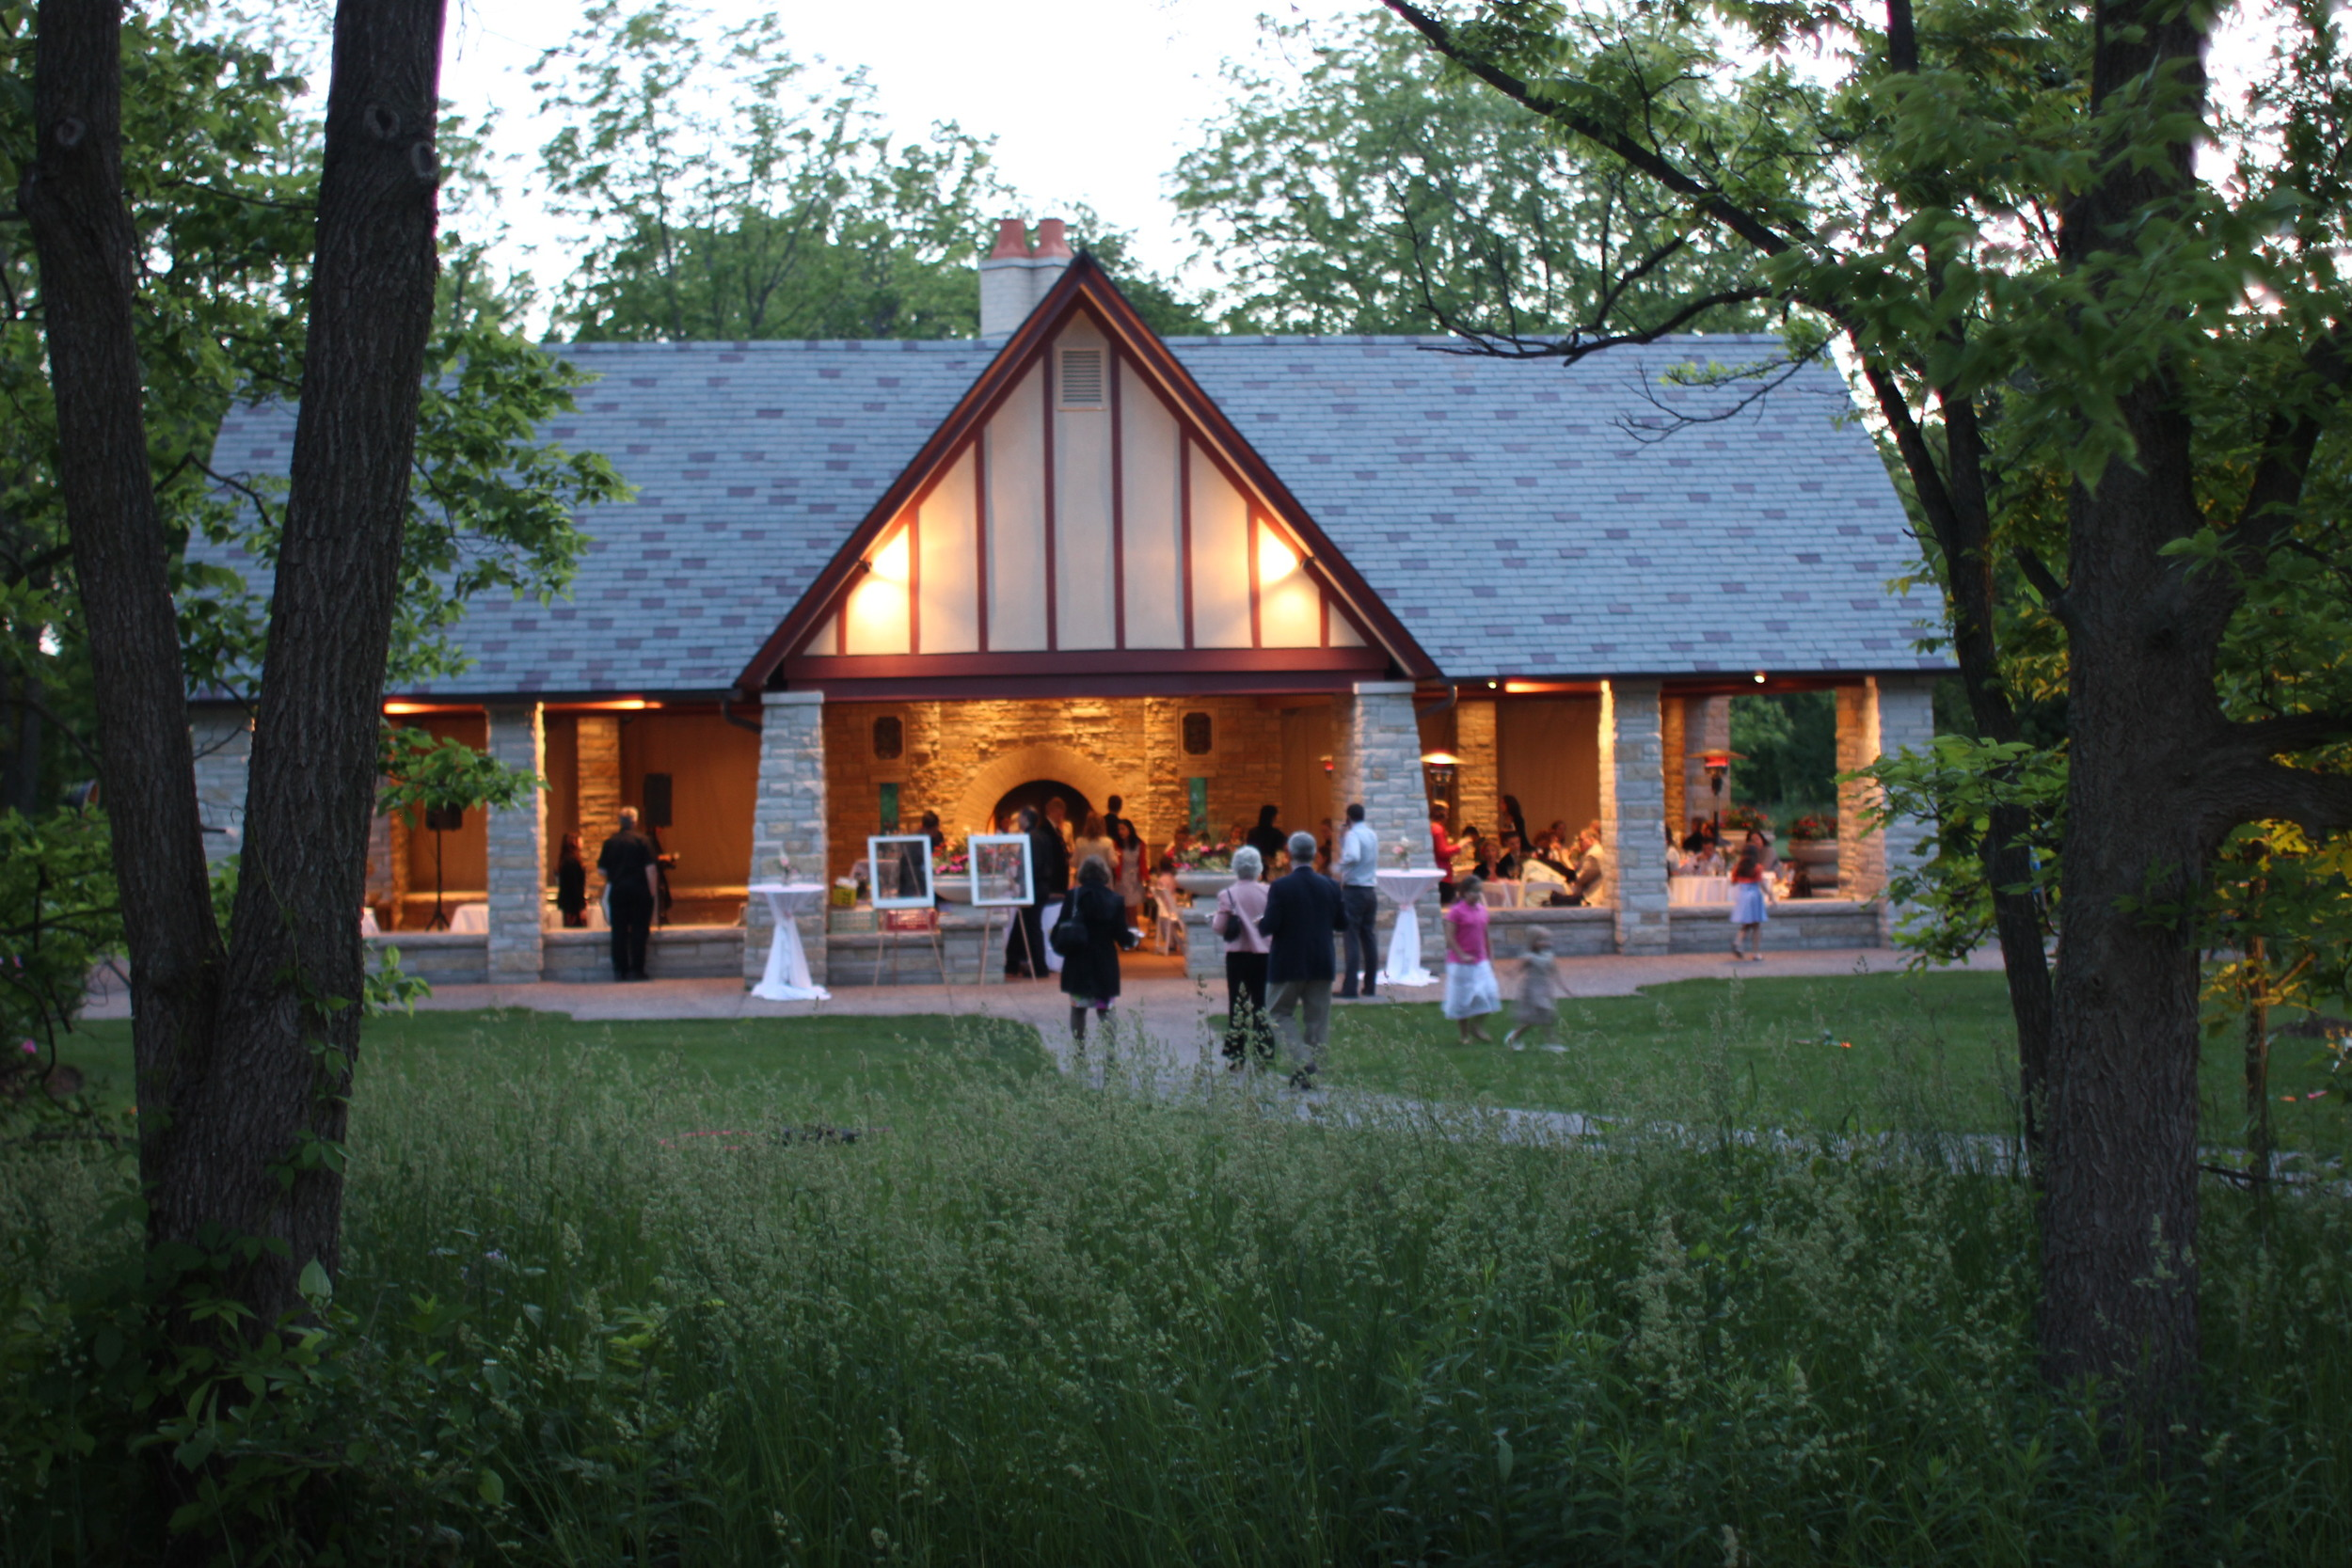 A view of wedding guests having fun in the pavilion at the Grove Redfield Estate in Glenview, IL.